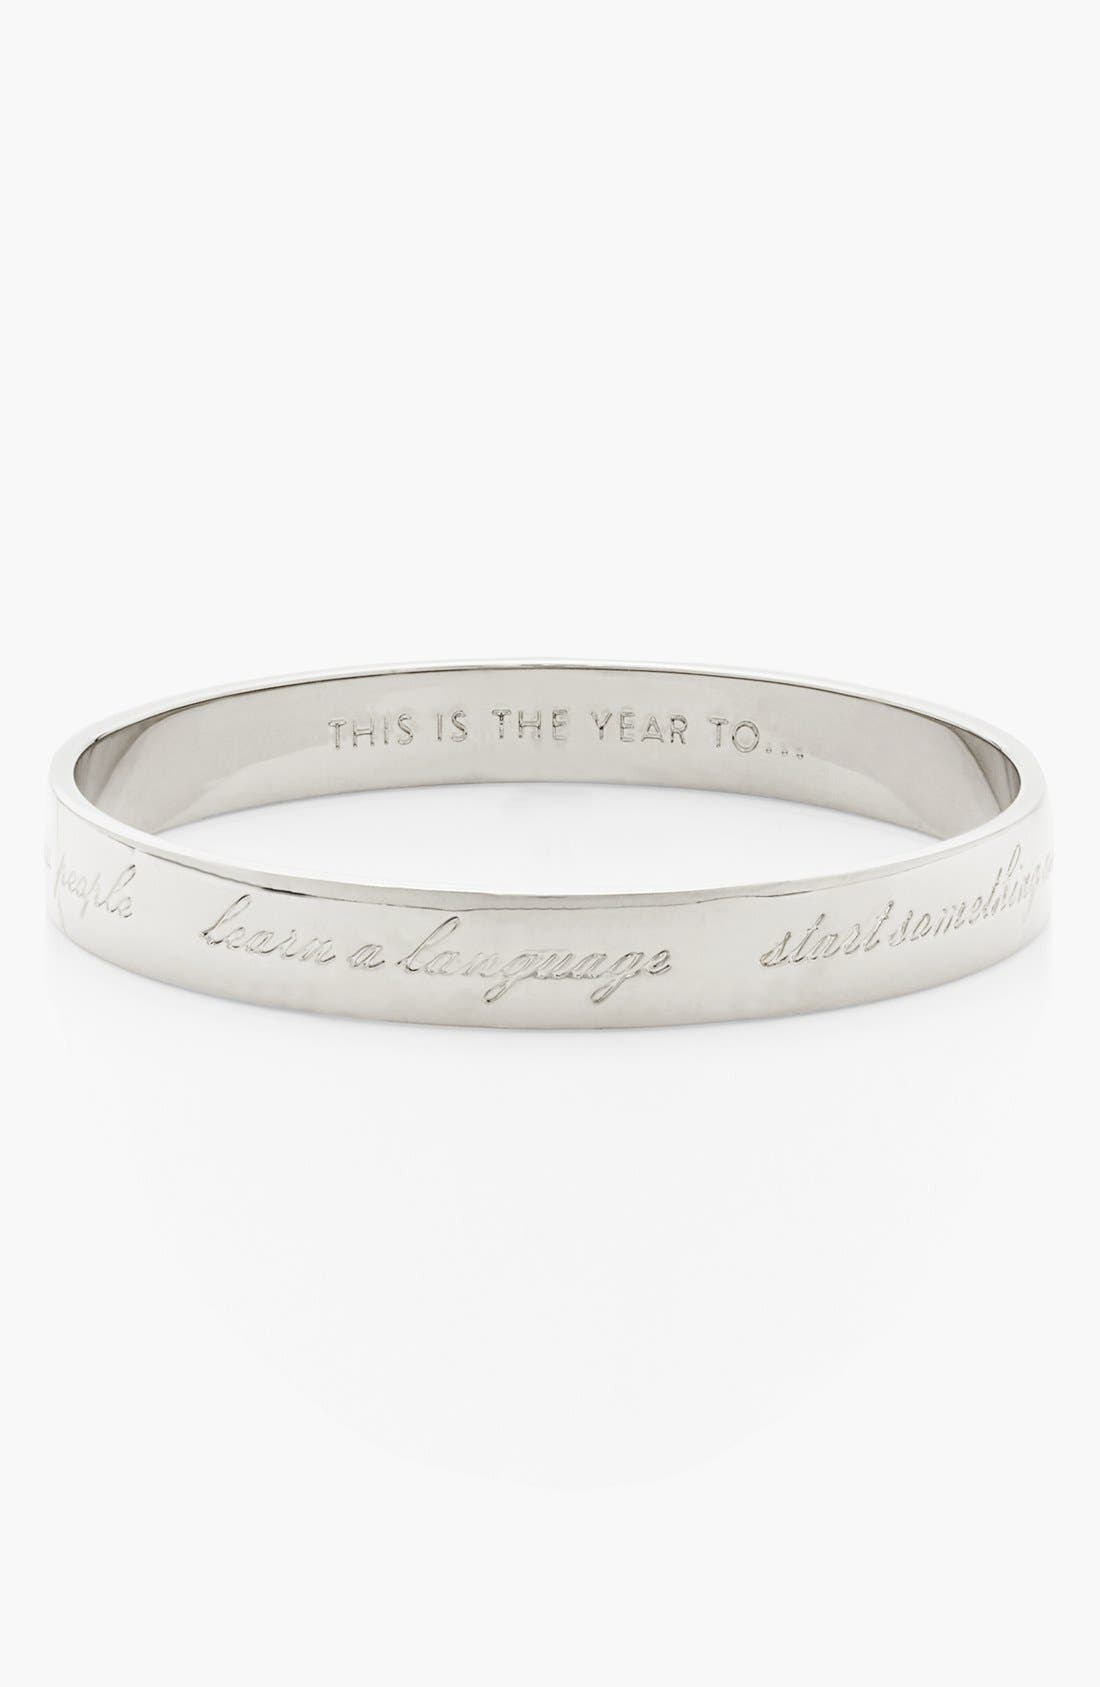 Main Image - kate spade new york 'idiom - this is the year to...' thin bangle